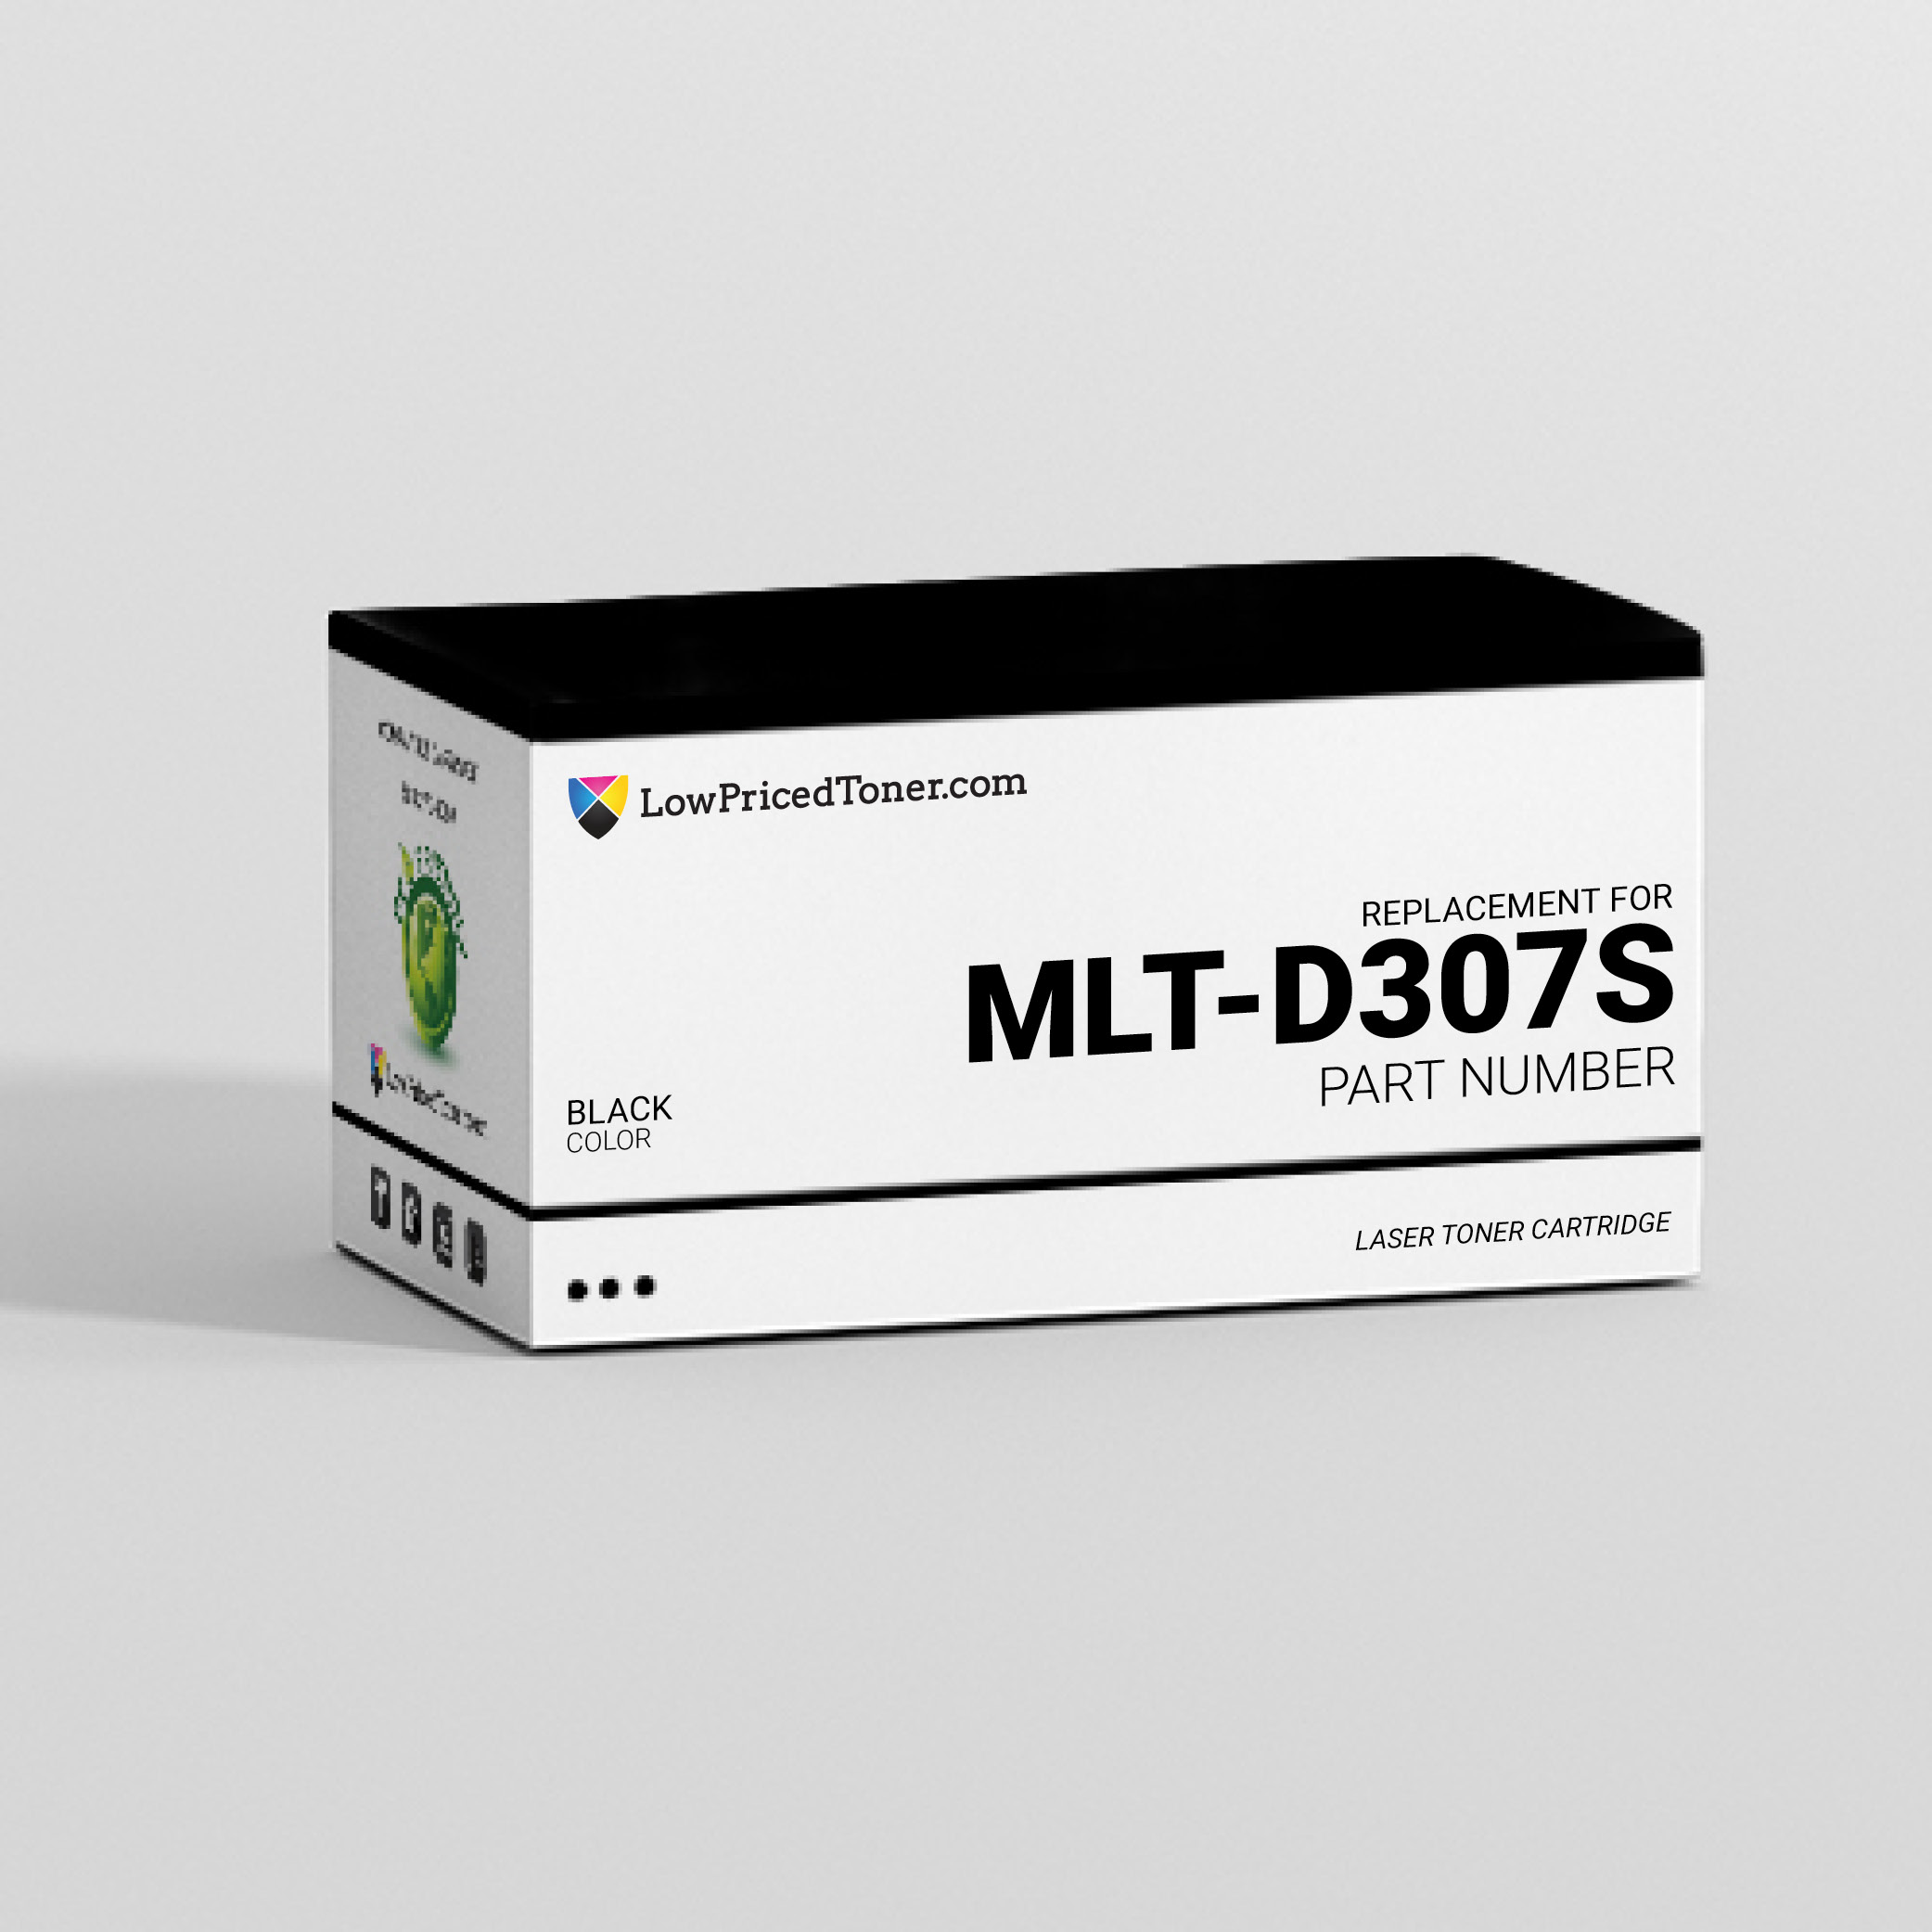 Samsung MLT-D307S Compatible Black Laser Toner Cartridge